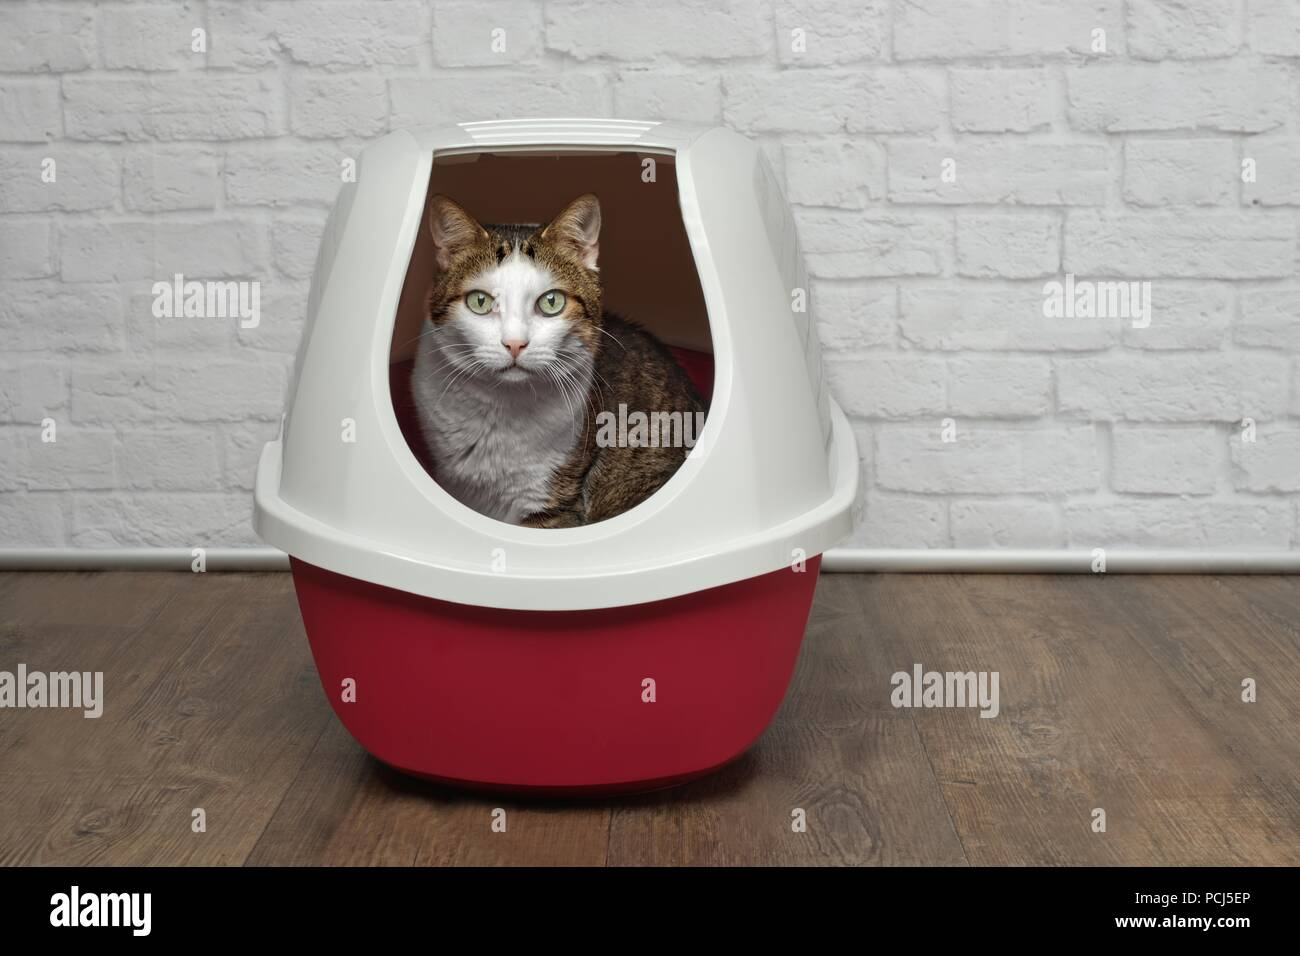 Cute tabby cat sitting in a red litter box and looking to the camera. - Stock Image